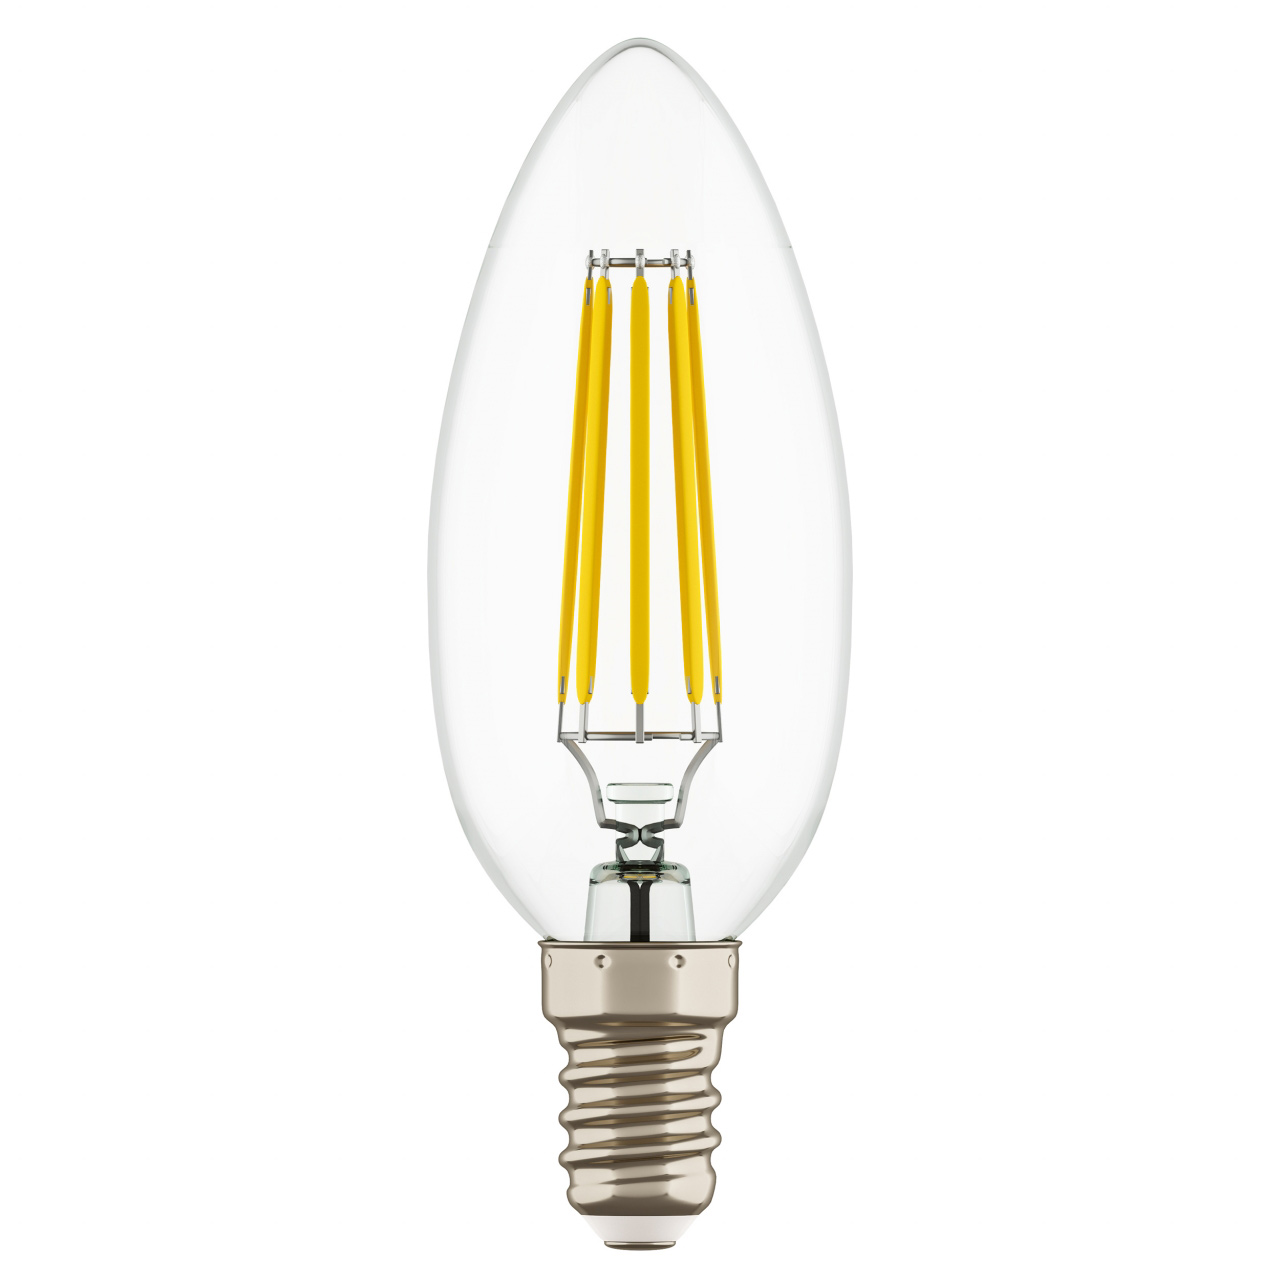 Лампа LED 220V C35 E14 4W=40W 350LM 360G CL 3000K 20000H Lightstar 940562